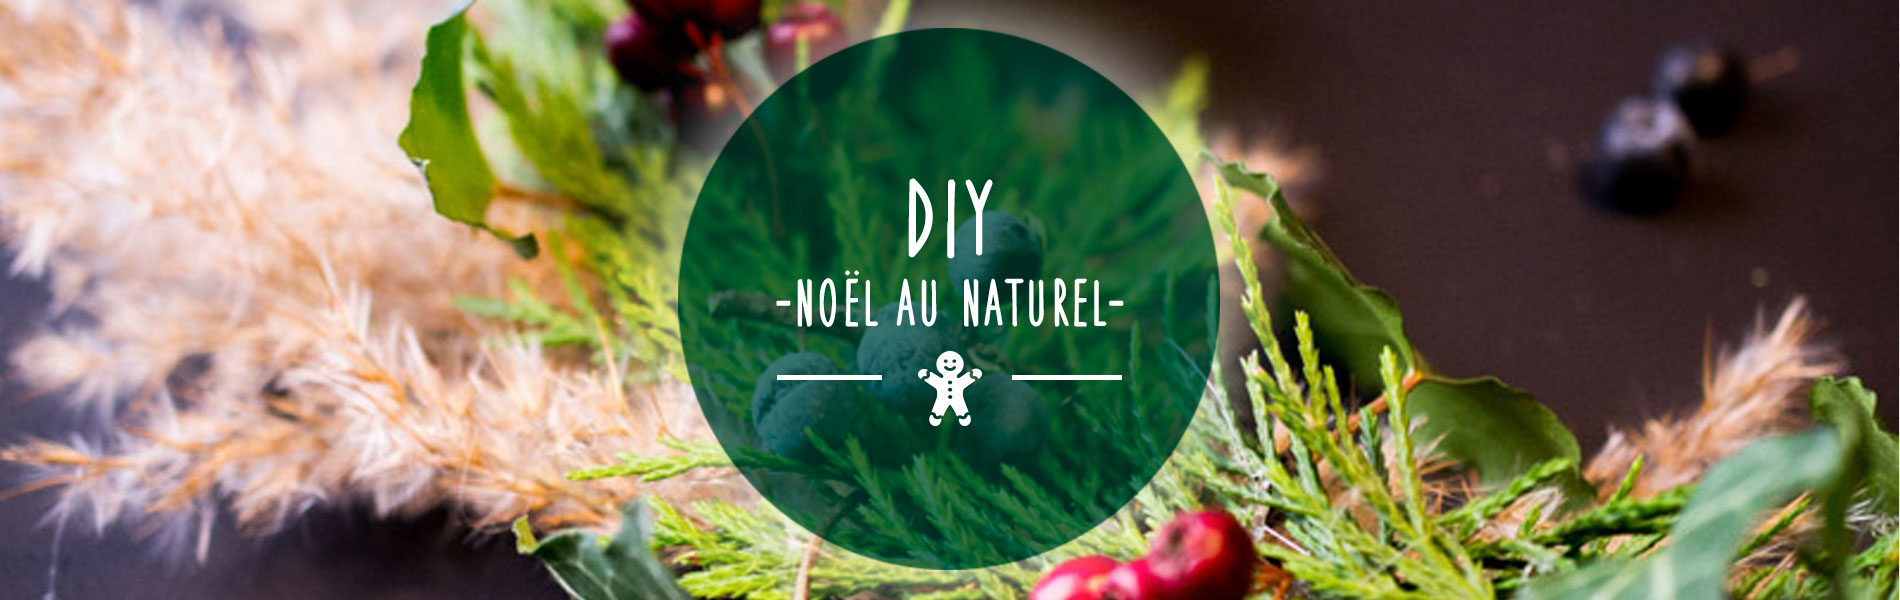 westwing-DIY Noël au naturel